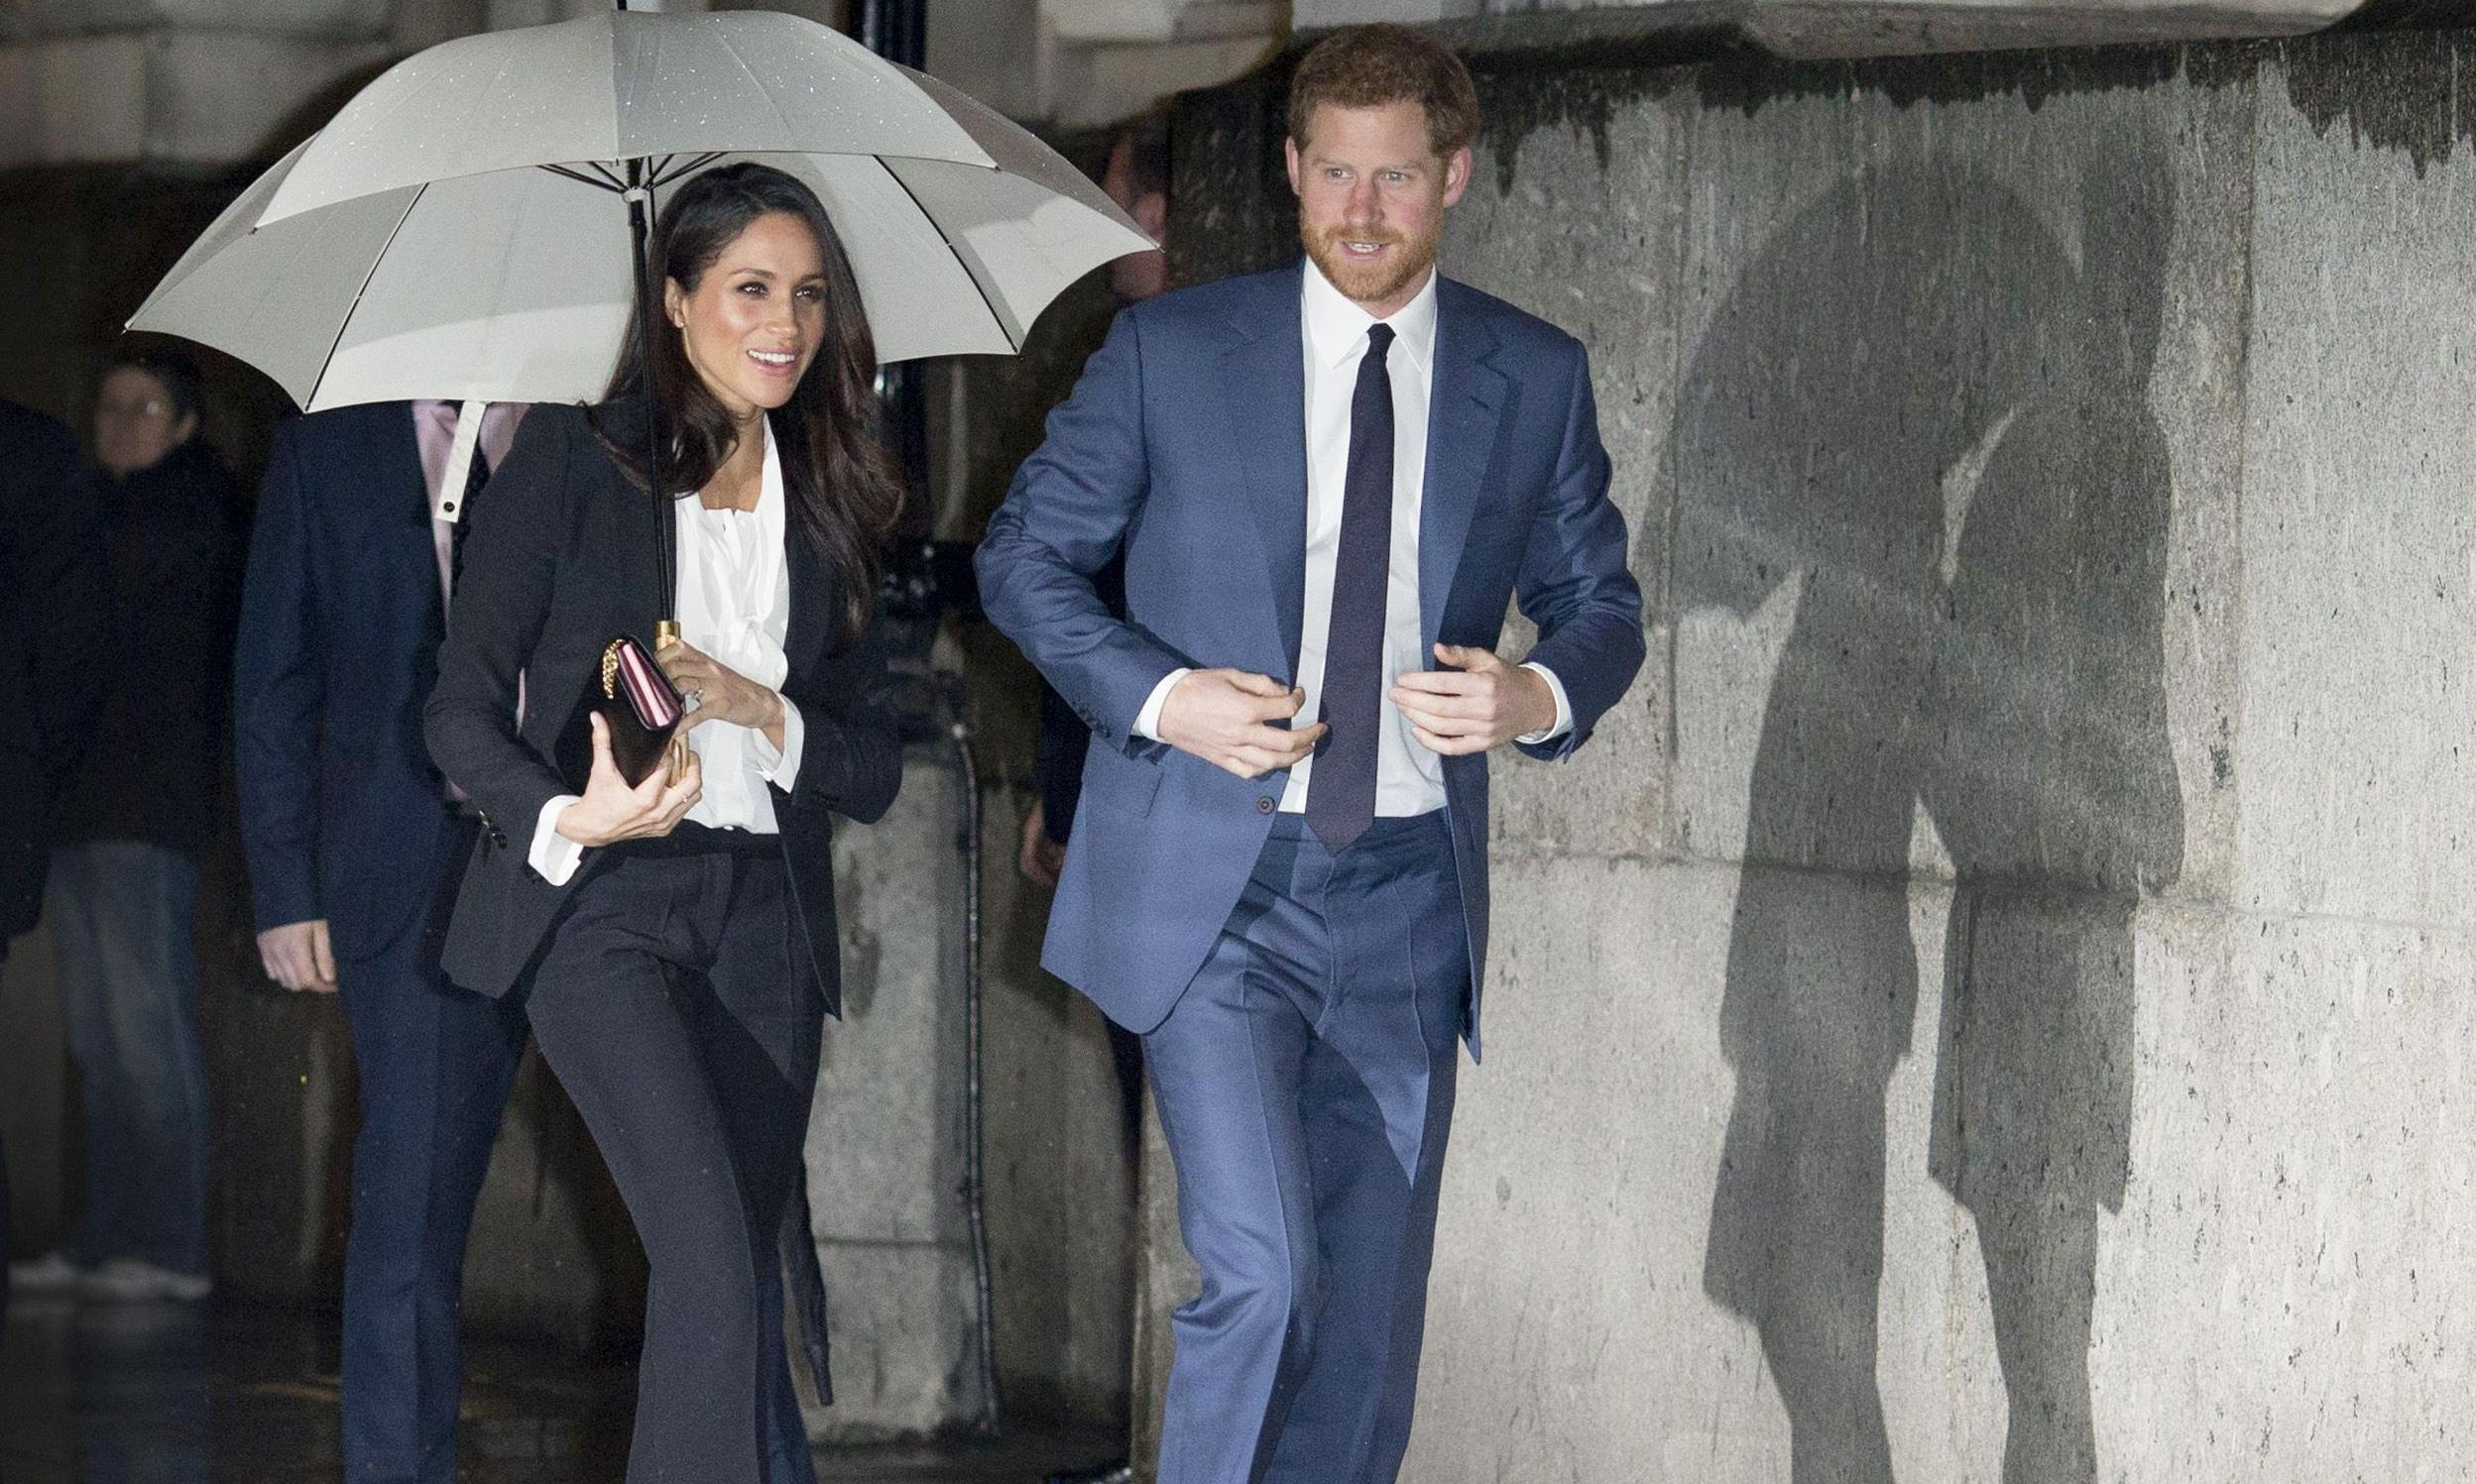 Eco-chic and trouser suits: how Meghan Markle's style reads the room